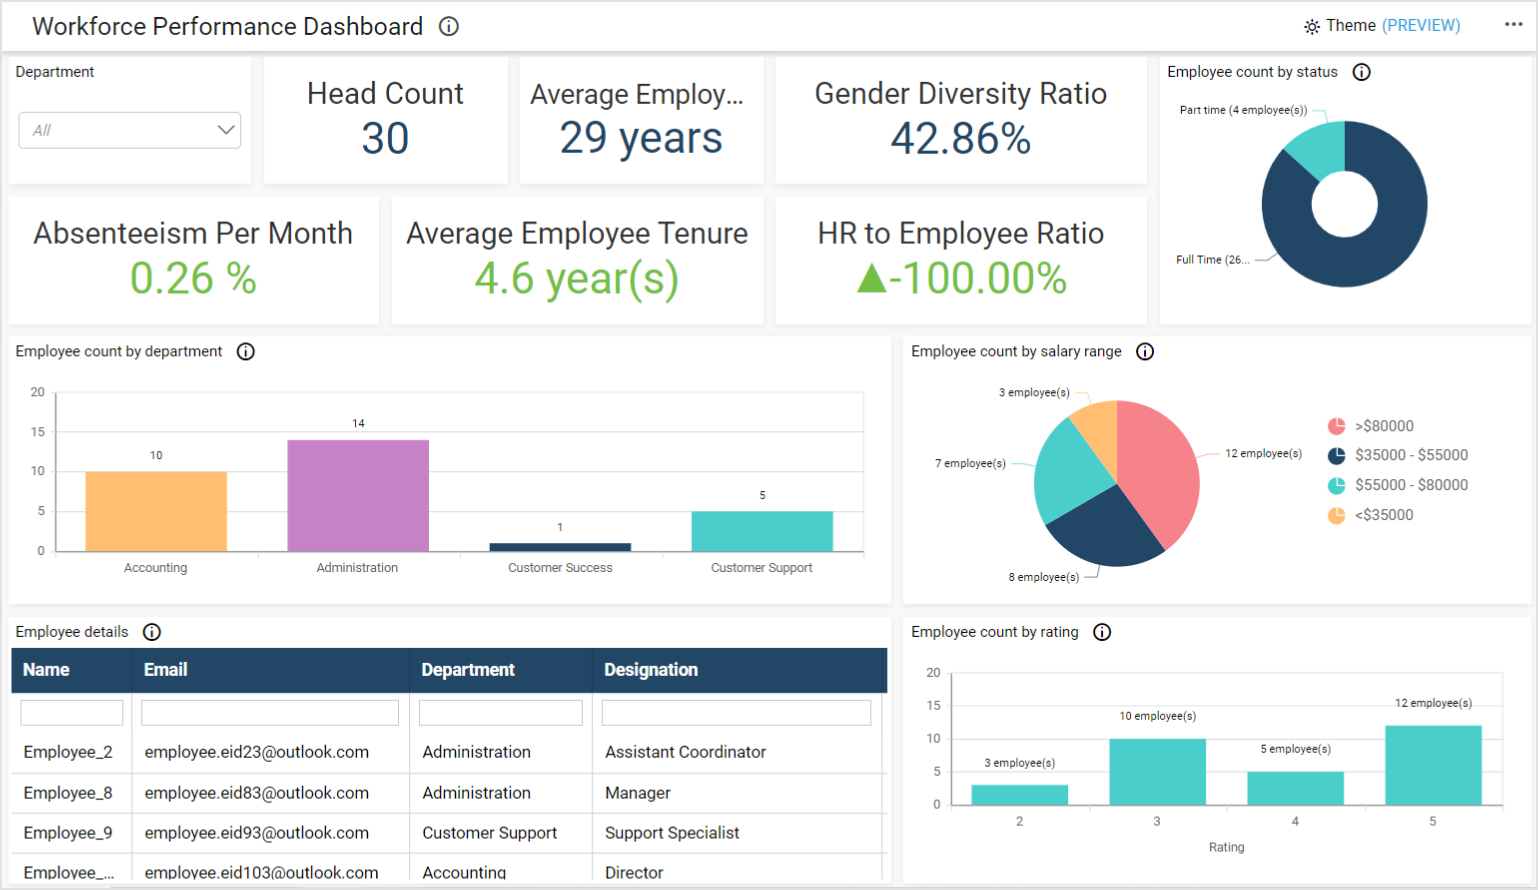 Workforce Performance Dashboard for Manager1 with Specific Department's Employee Data